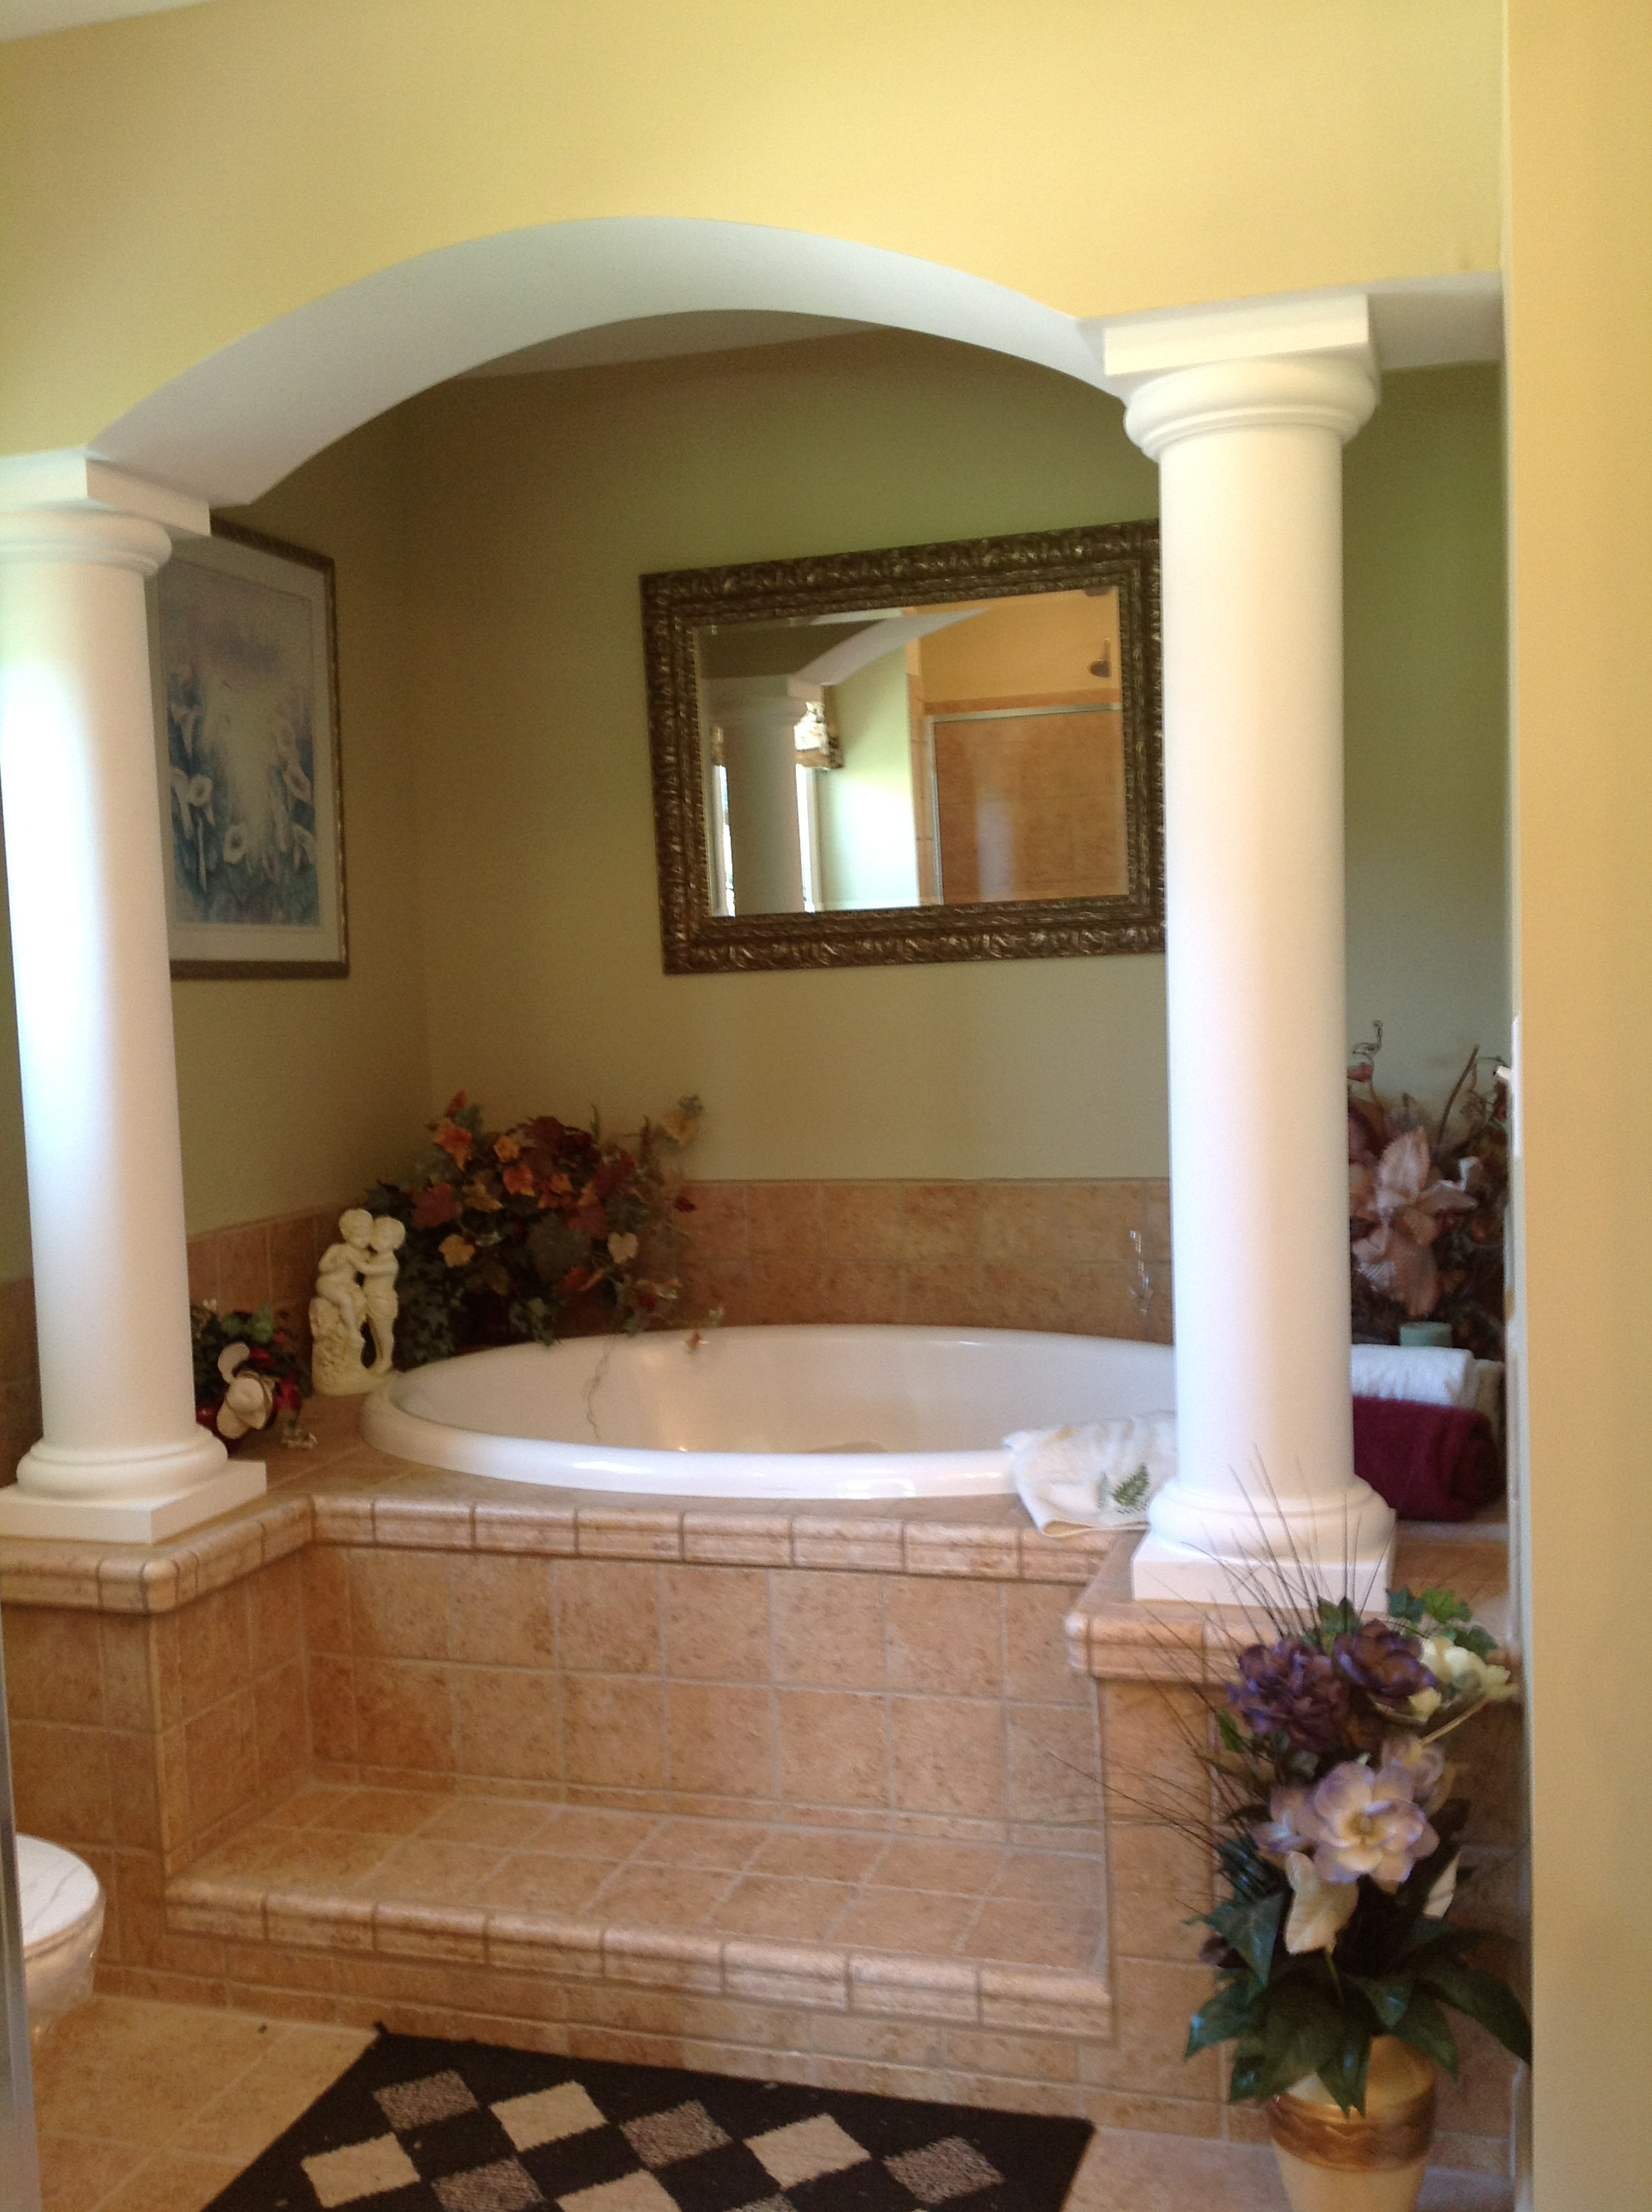 Optional pillars at tub